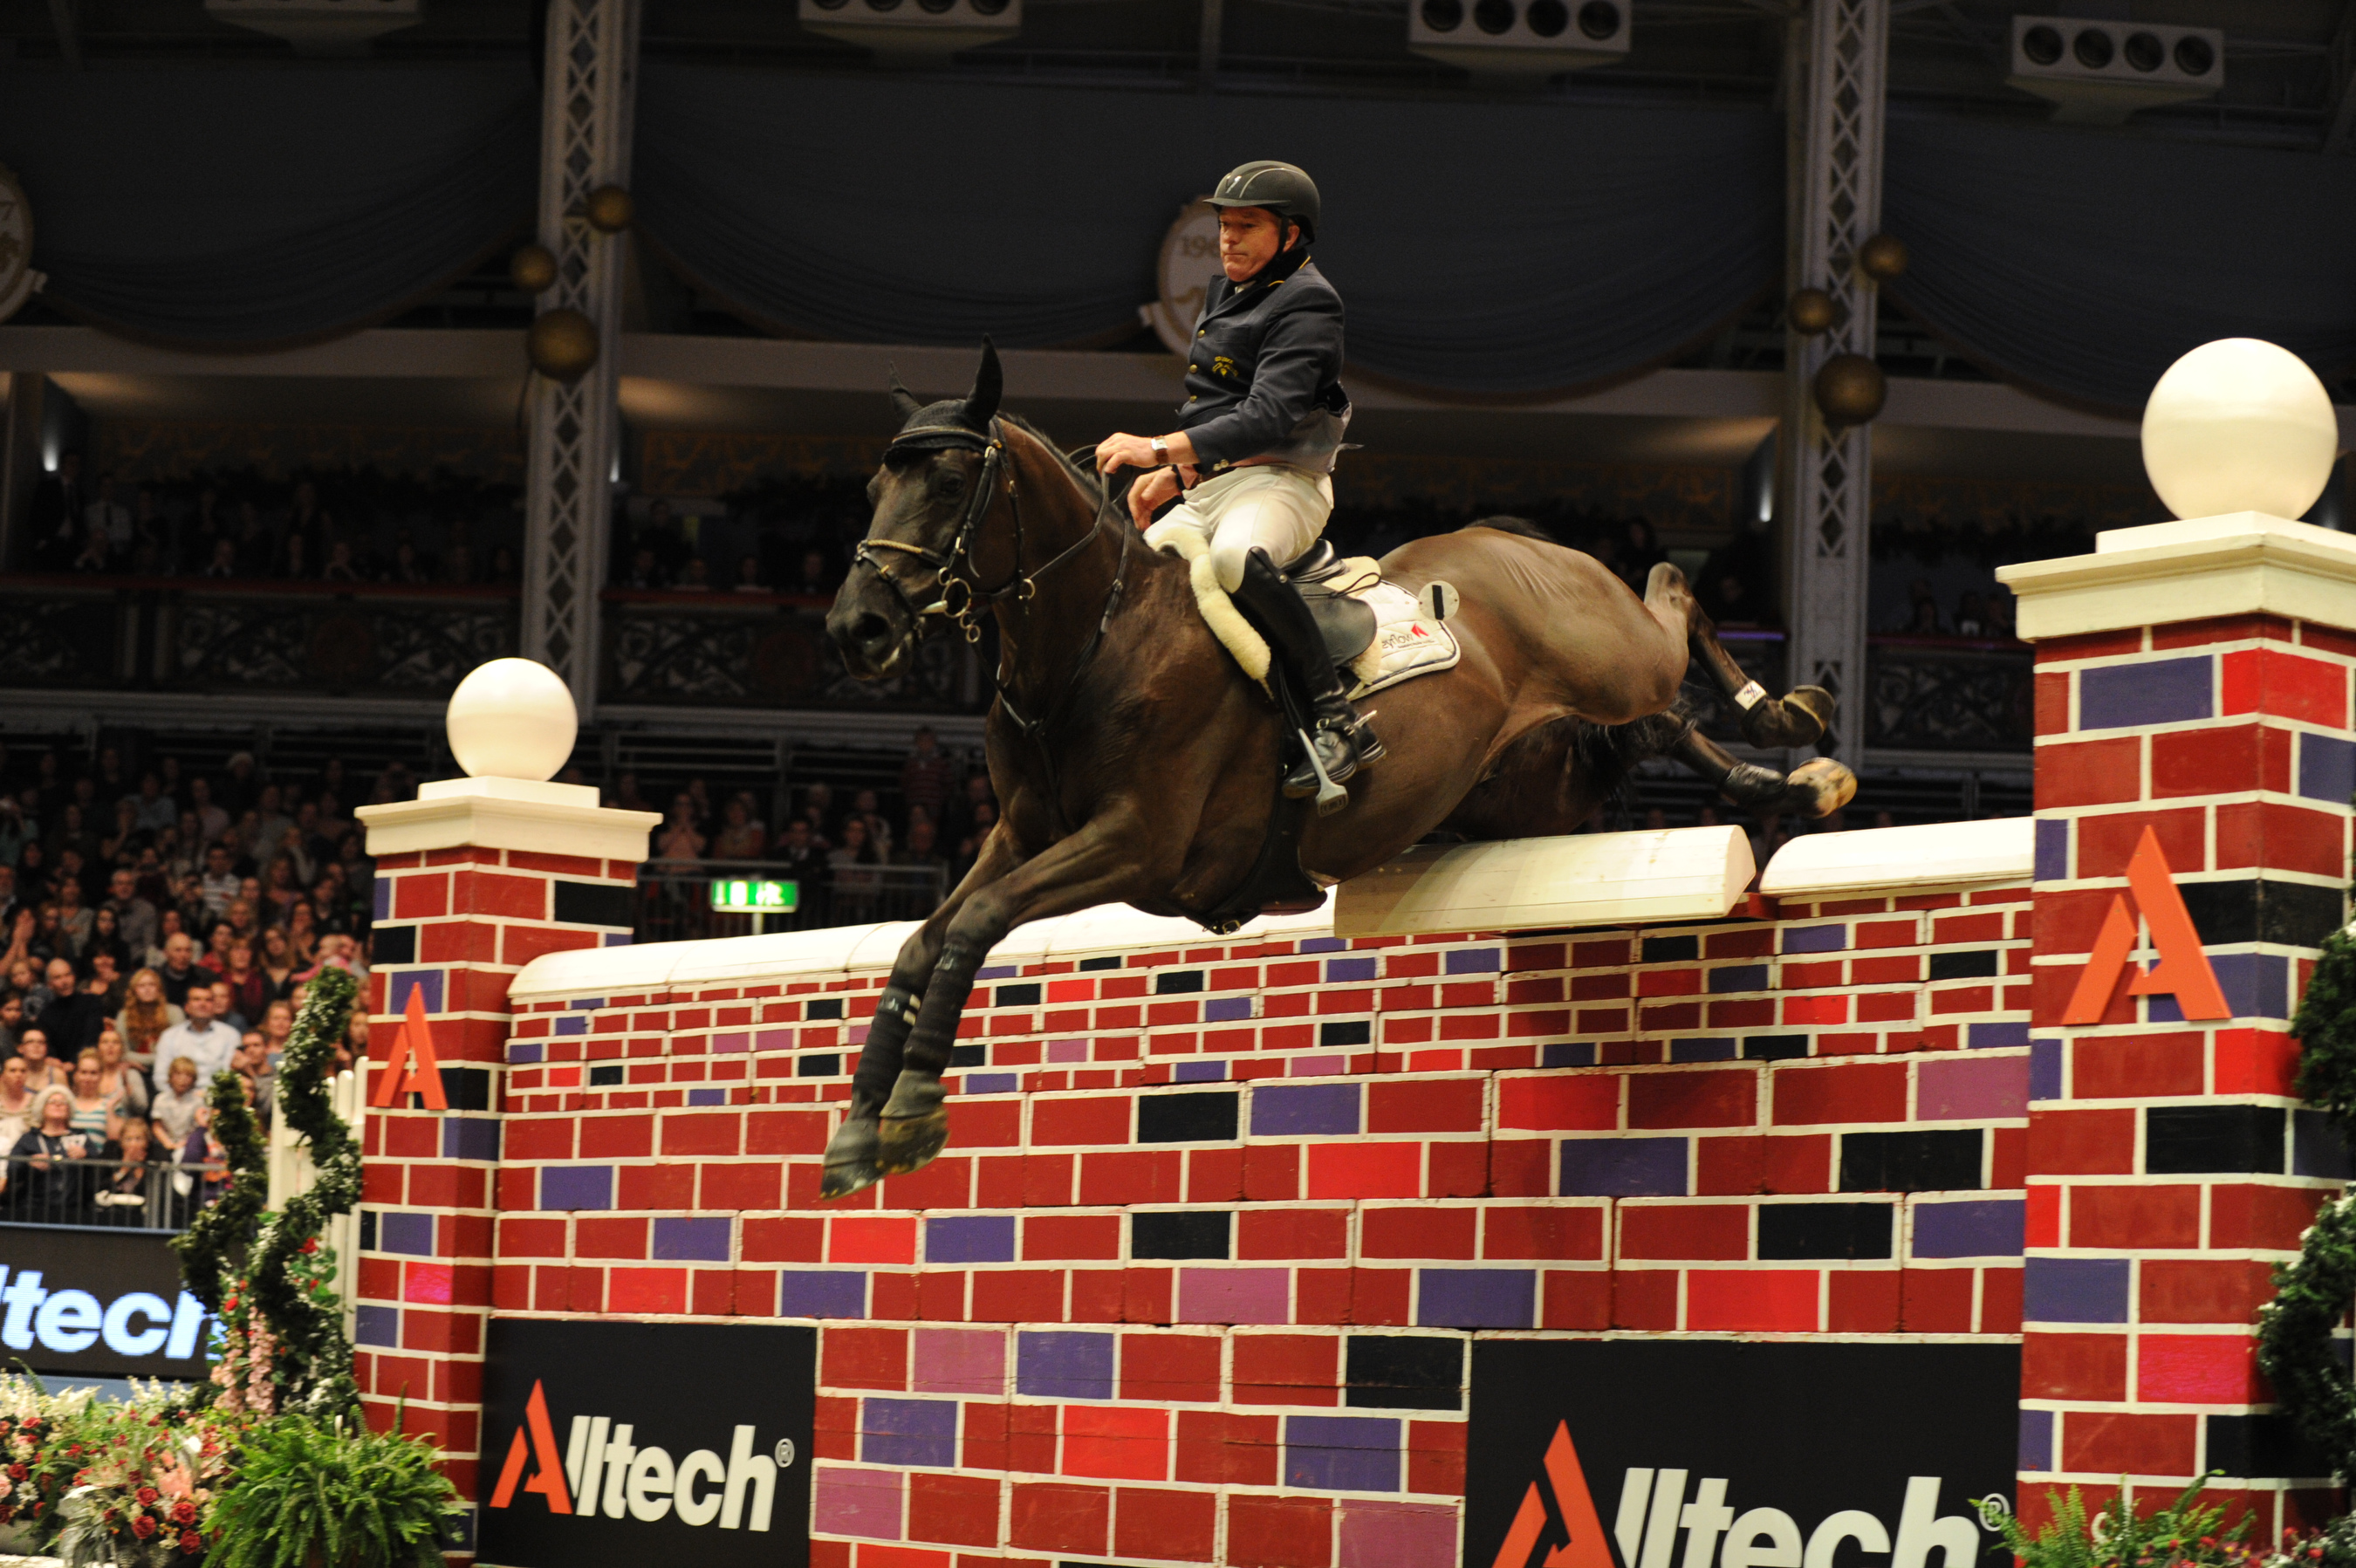 Olympia The Alltech Christmas Puissance 2015 The Gaitpost